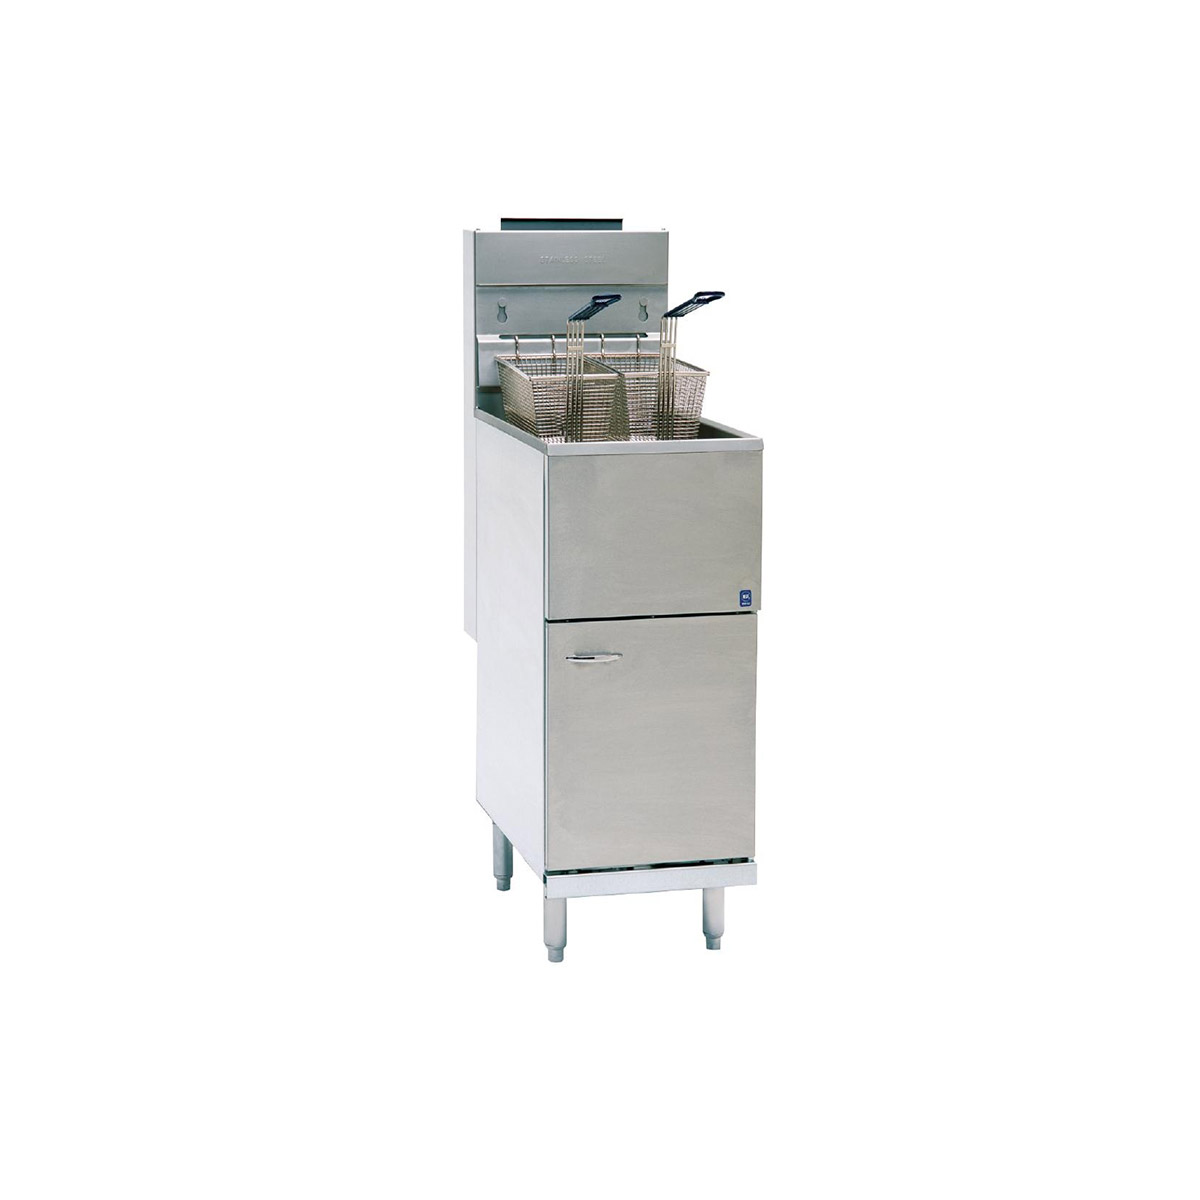 Pitco Single Tank Twin Basket Free Standing Propane Gas Fryer CE-35CS